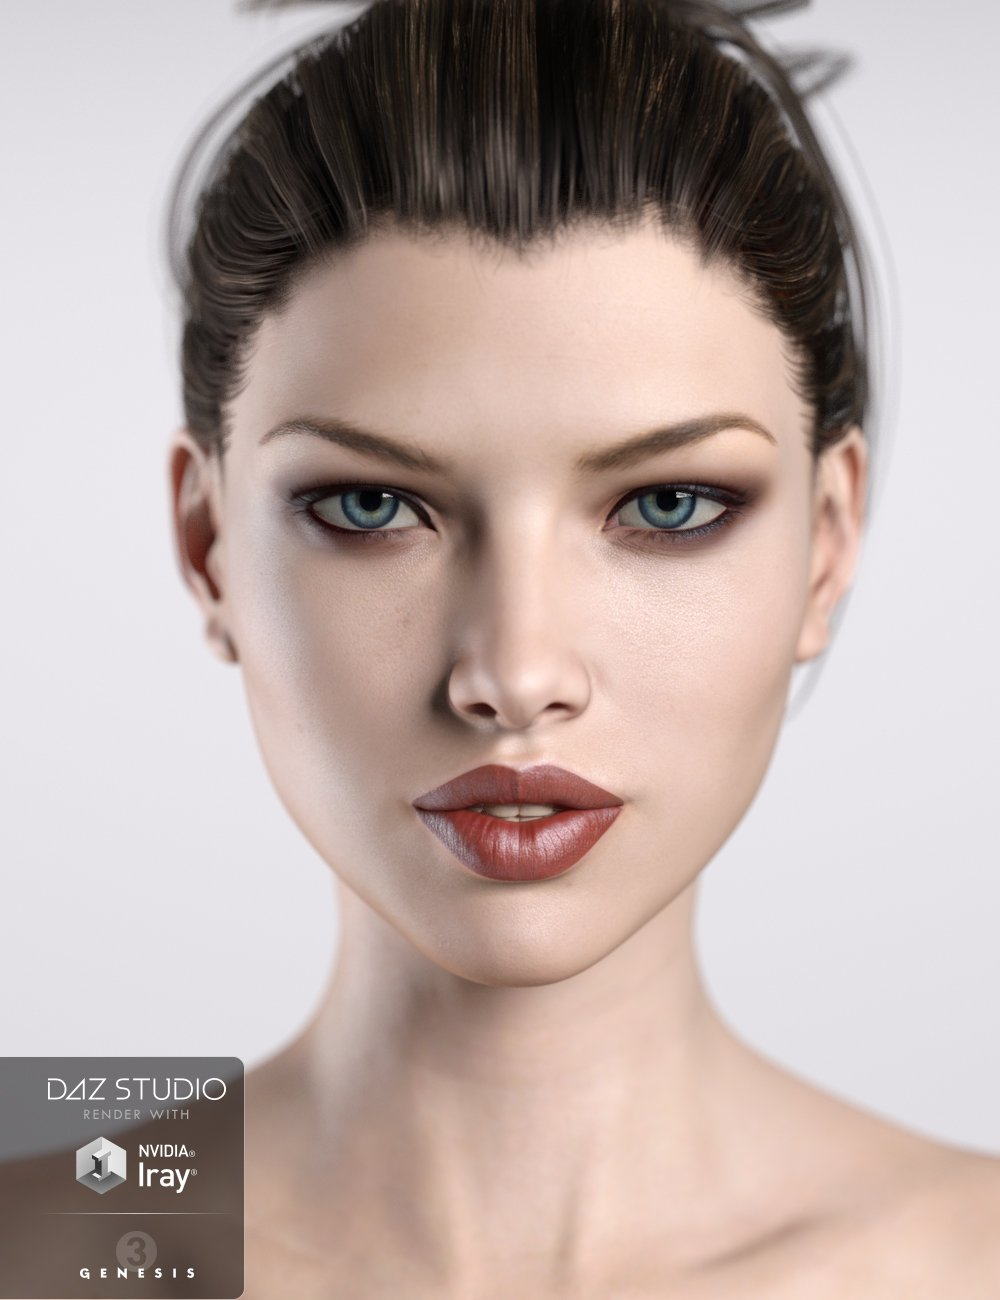 JM HumanShader for Iray by: JavierMicheal, 3D Models by Daz 3D